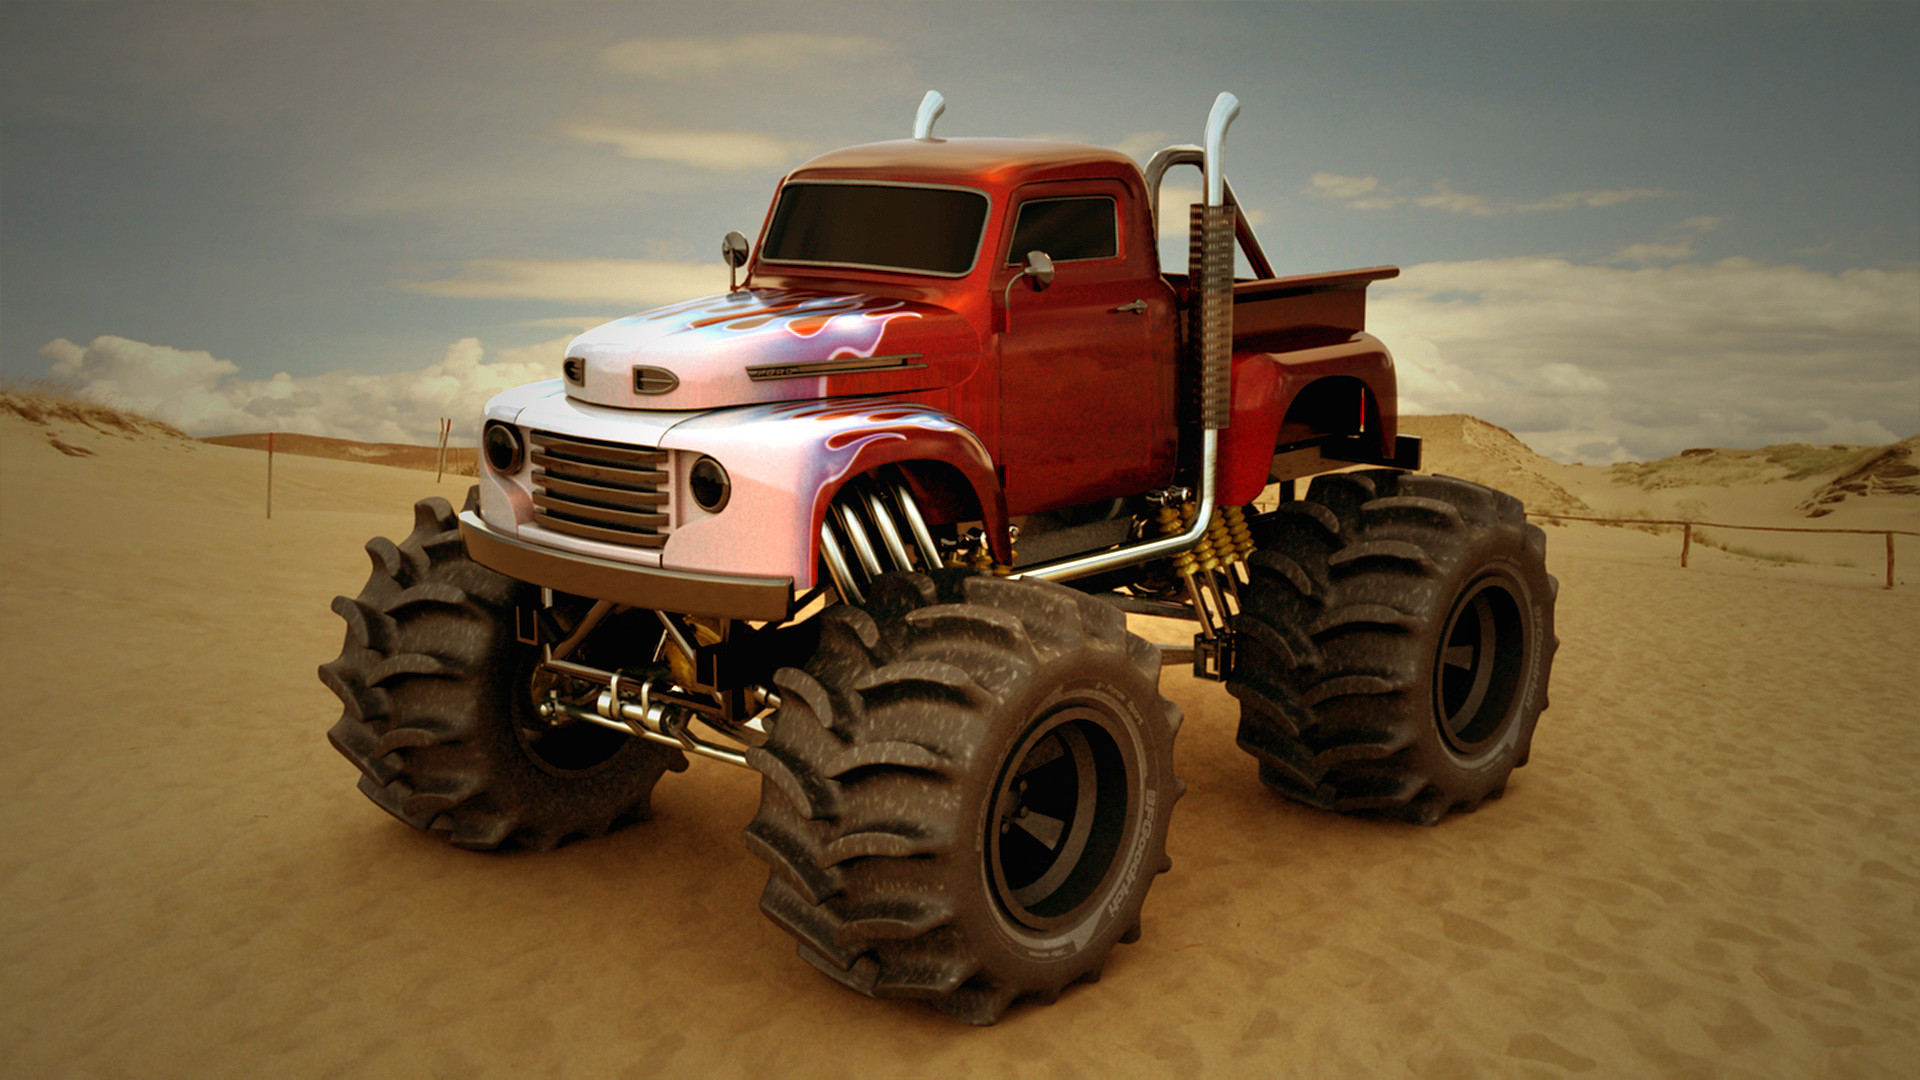 Monster Truck Wallpaper Hd 2379982 Hd Wallpaper Backgrounds Download